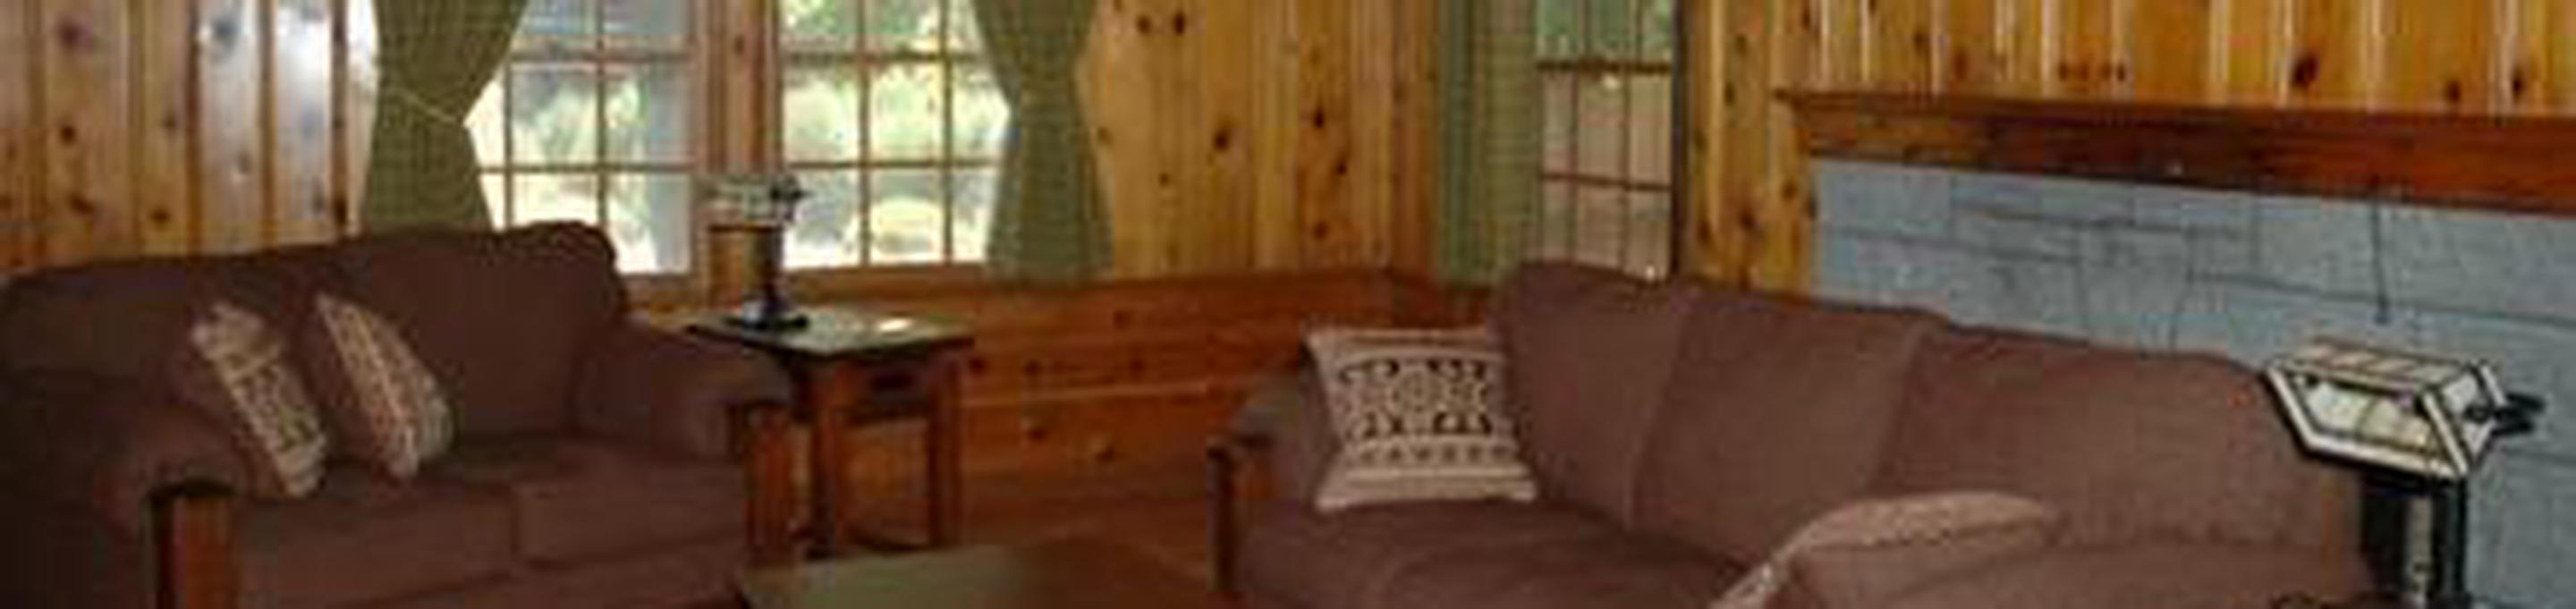 Couch and love seat in wood paneled living room.Ochoco Ranger Rental Living Room